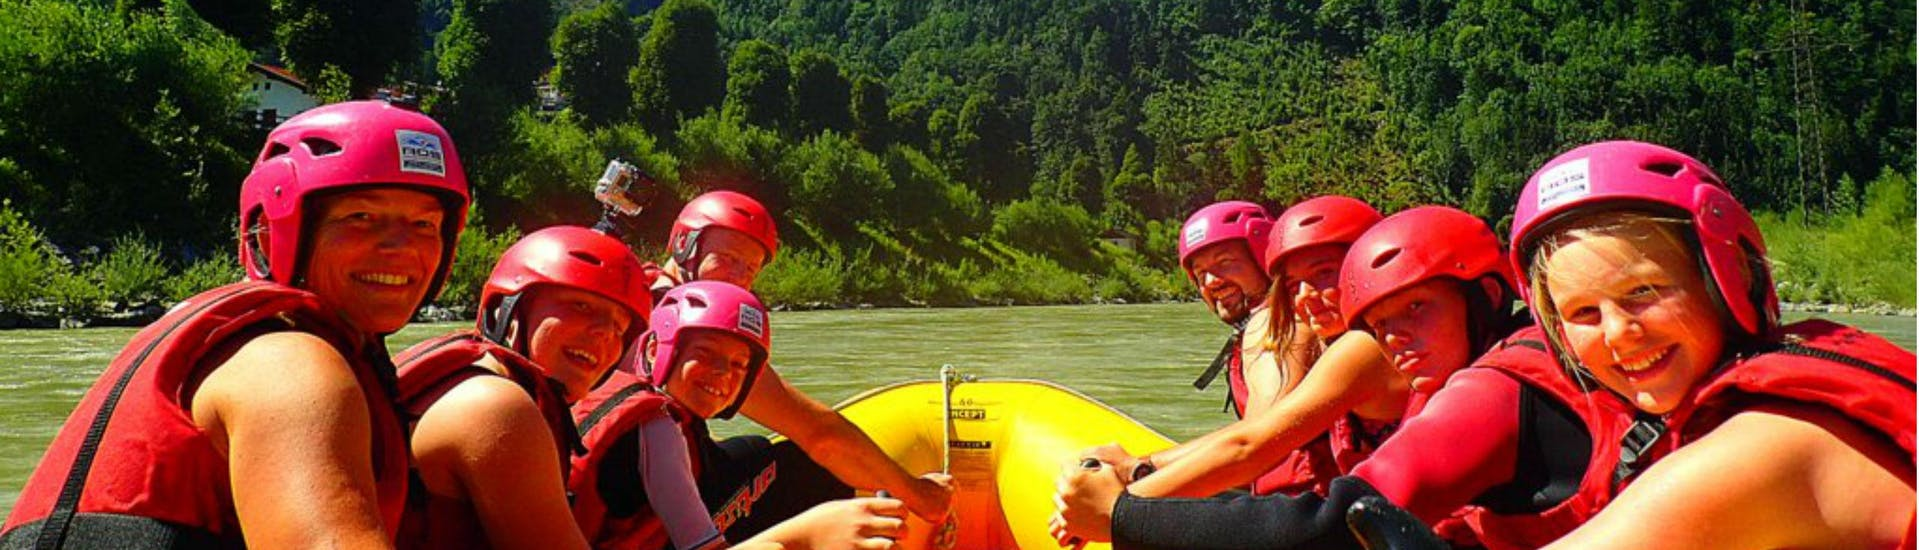 A group of people having fun rafting down Salzach River on their tour with Torrent Outdoor Experience.